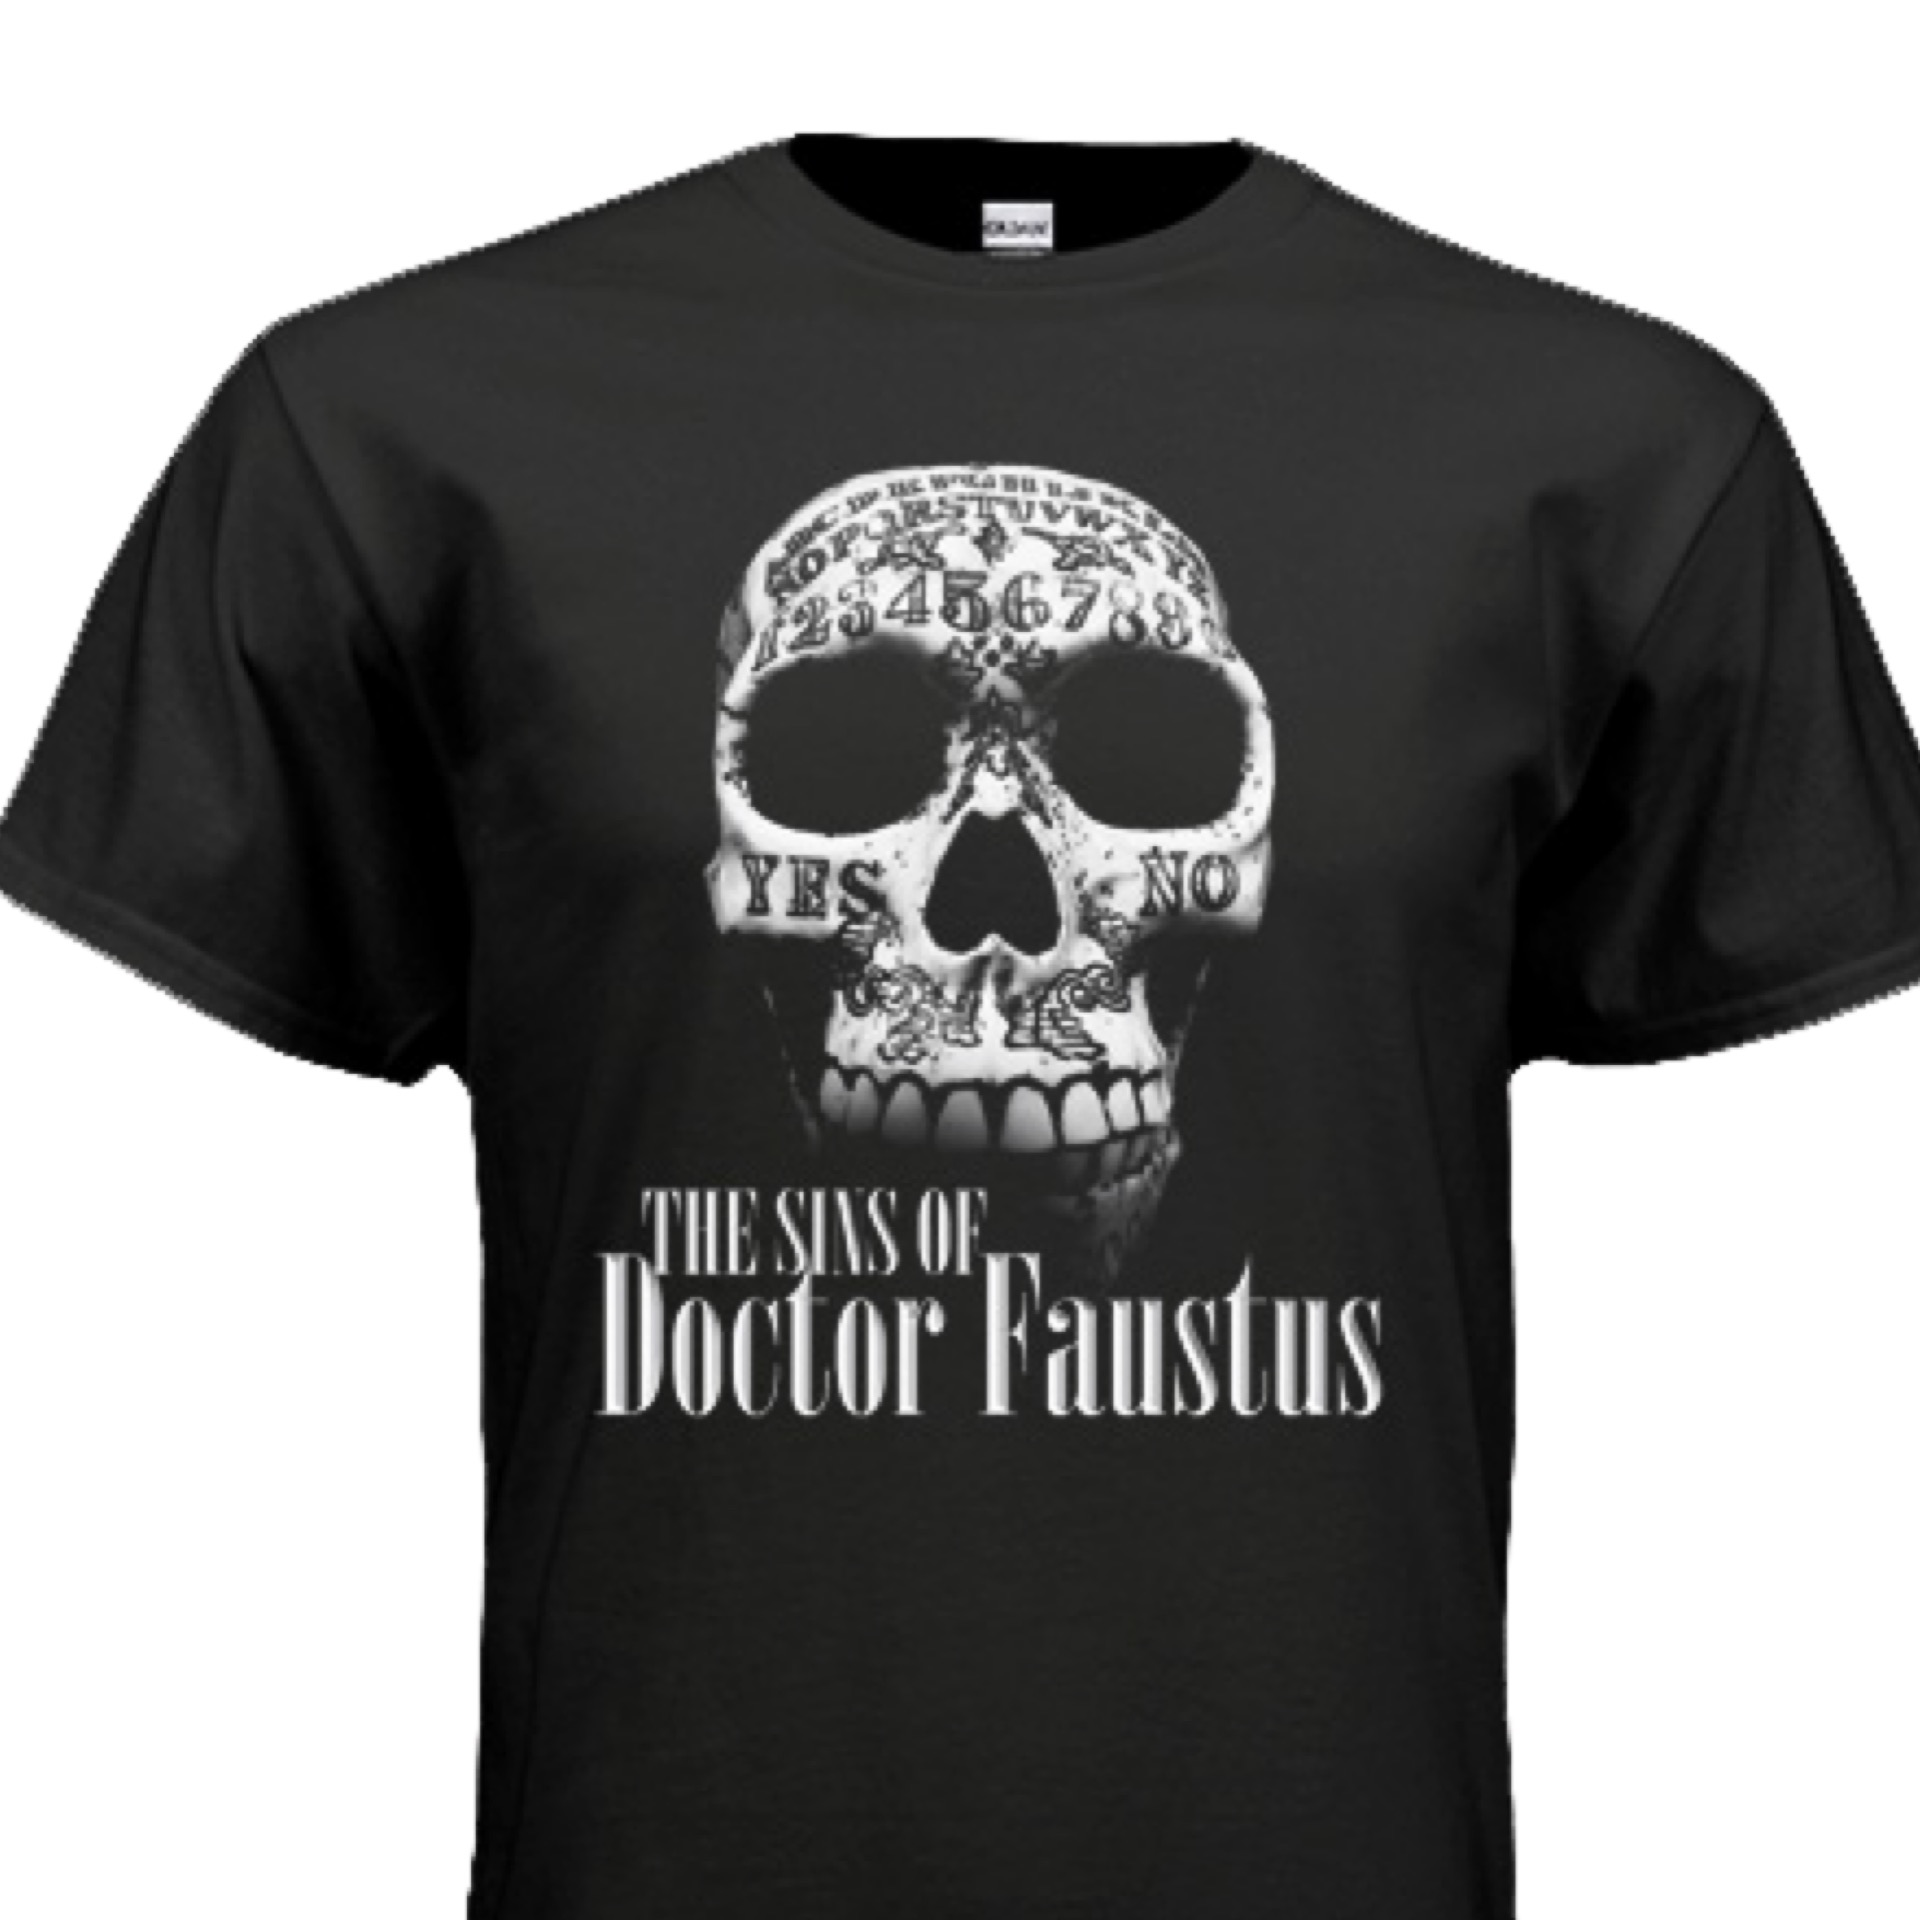 Sins of Dr. Faustus T-shirt - Mens/Unisex